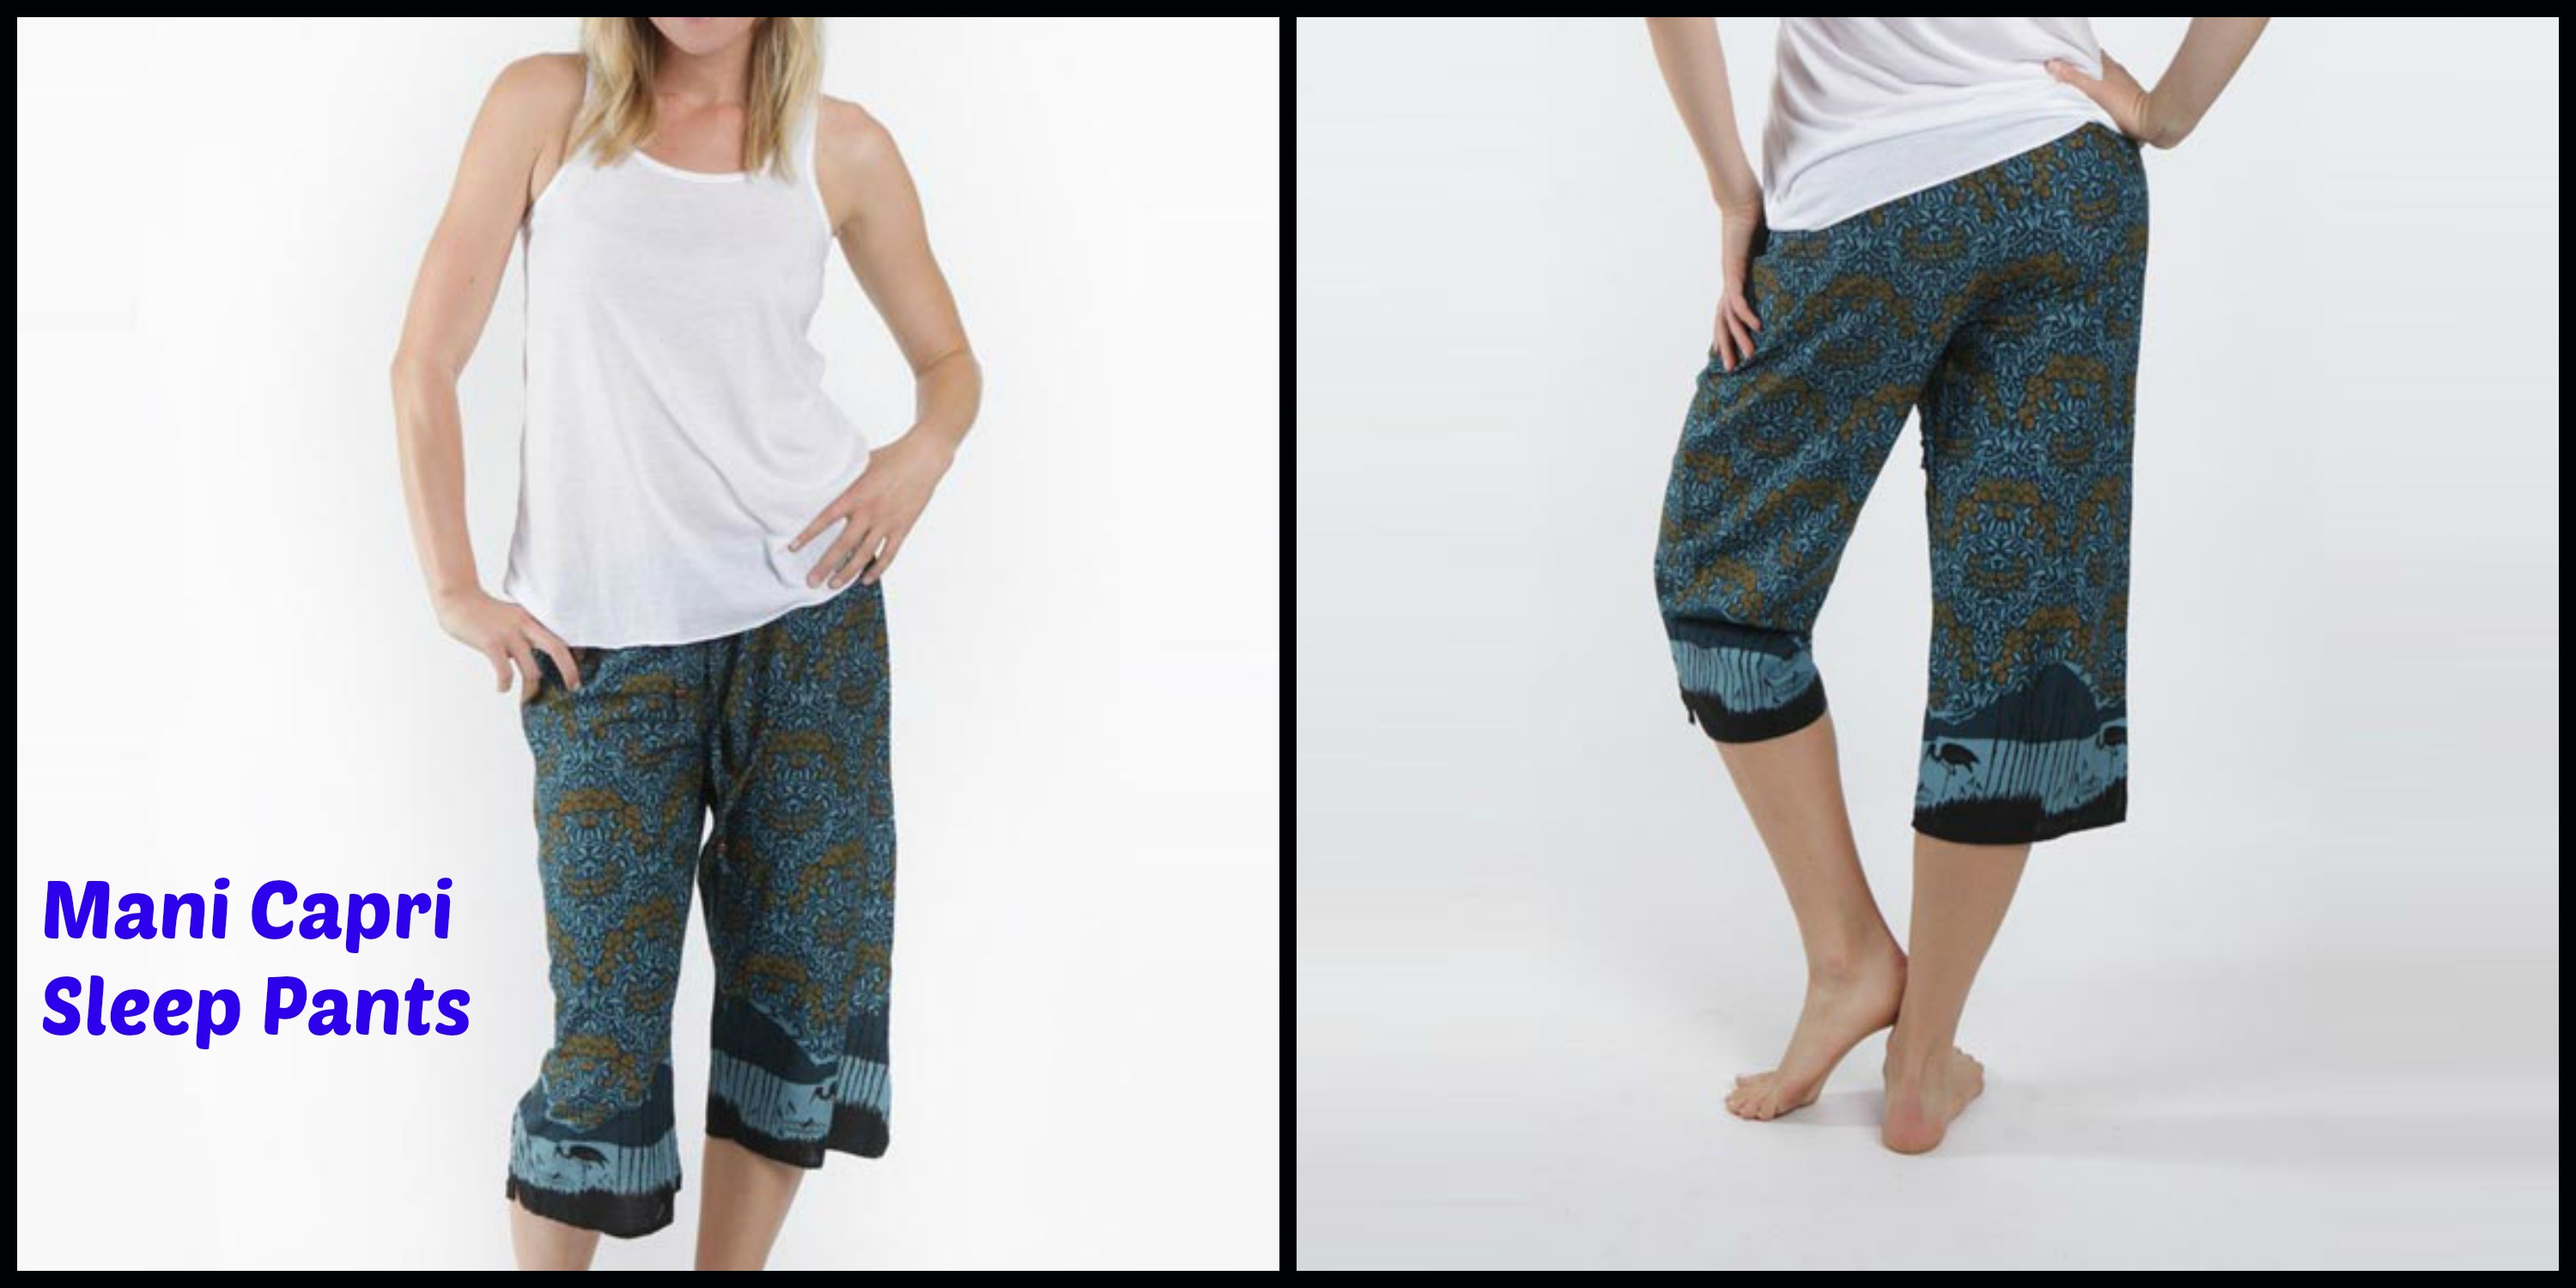 Mani Capri Sleep Pants